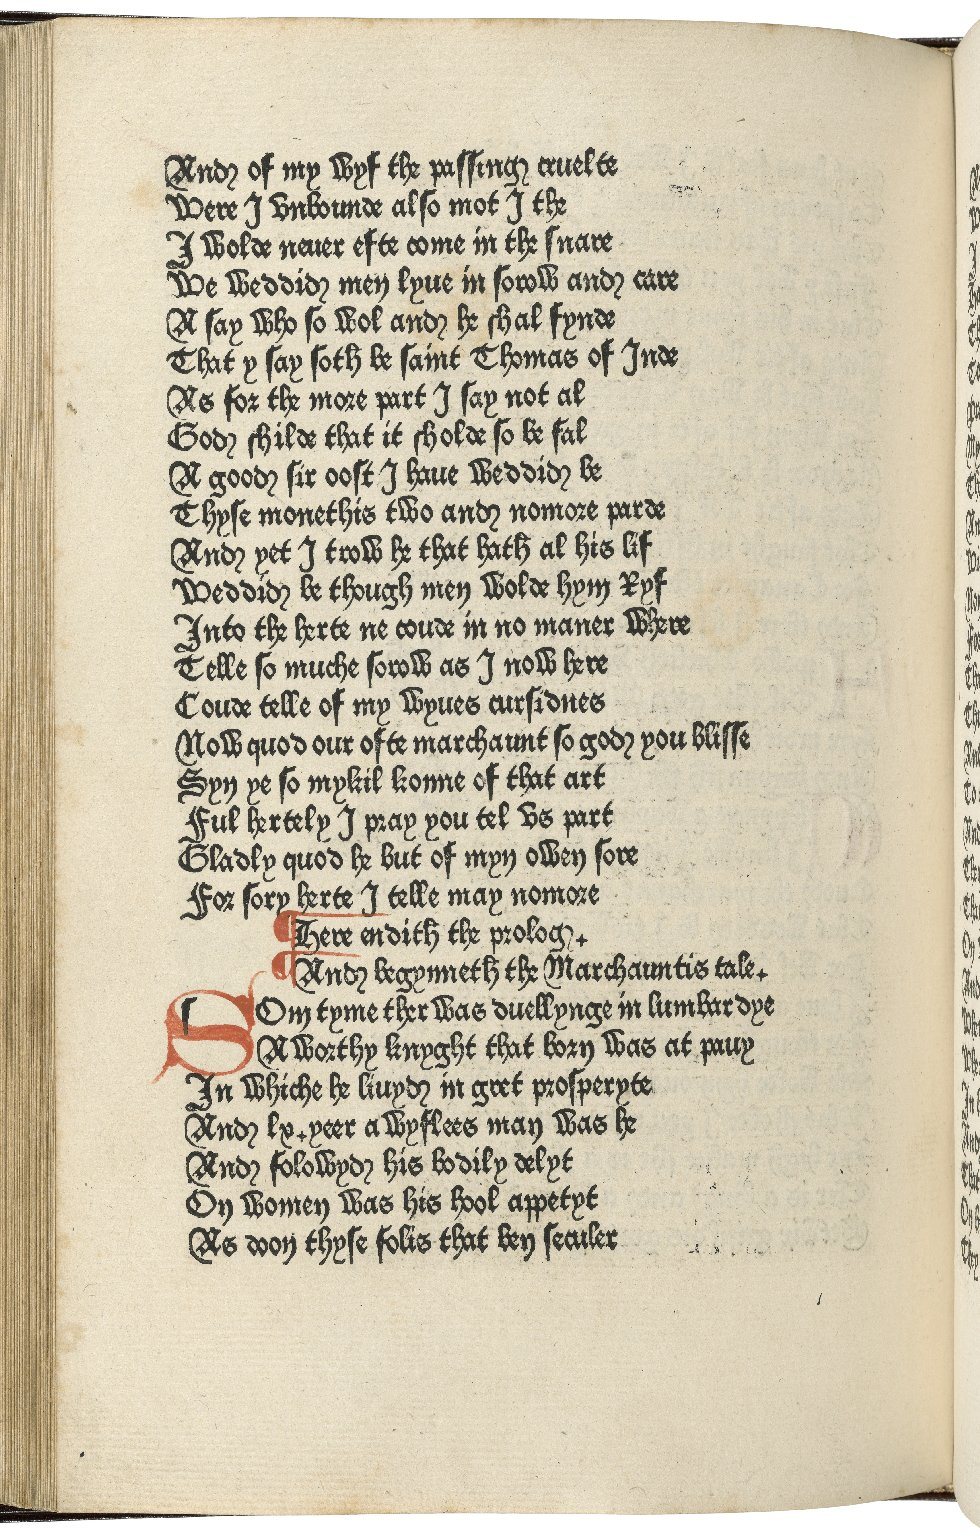 the use of irony in chaucer s canterbury tales free The canterbury tales: chaucer's stereotypes and  irony plays a major role throughout the canterbury tales explain how his use of irony.